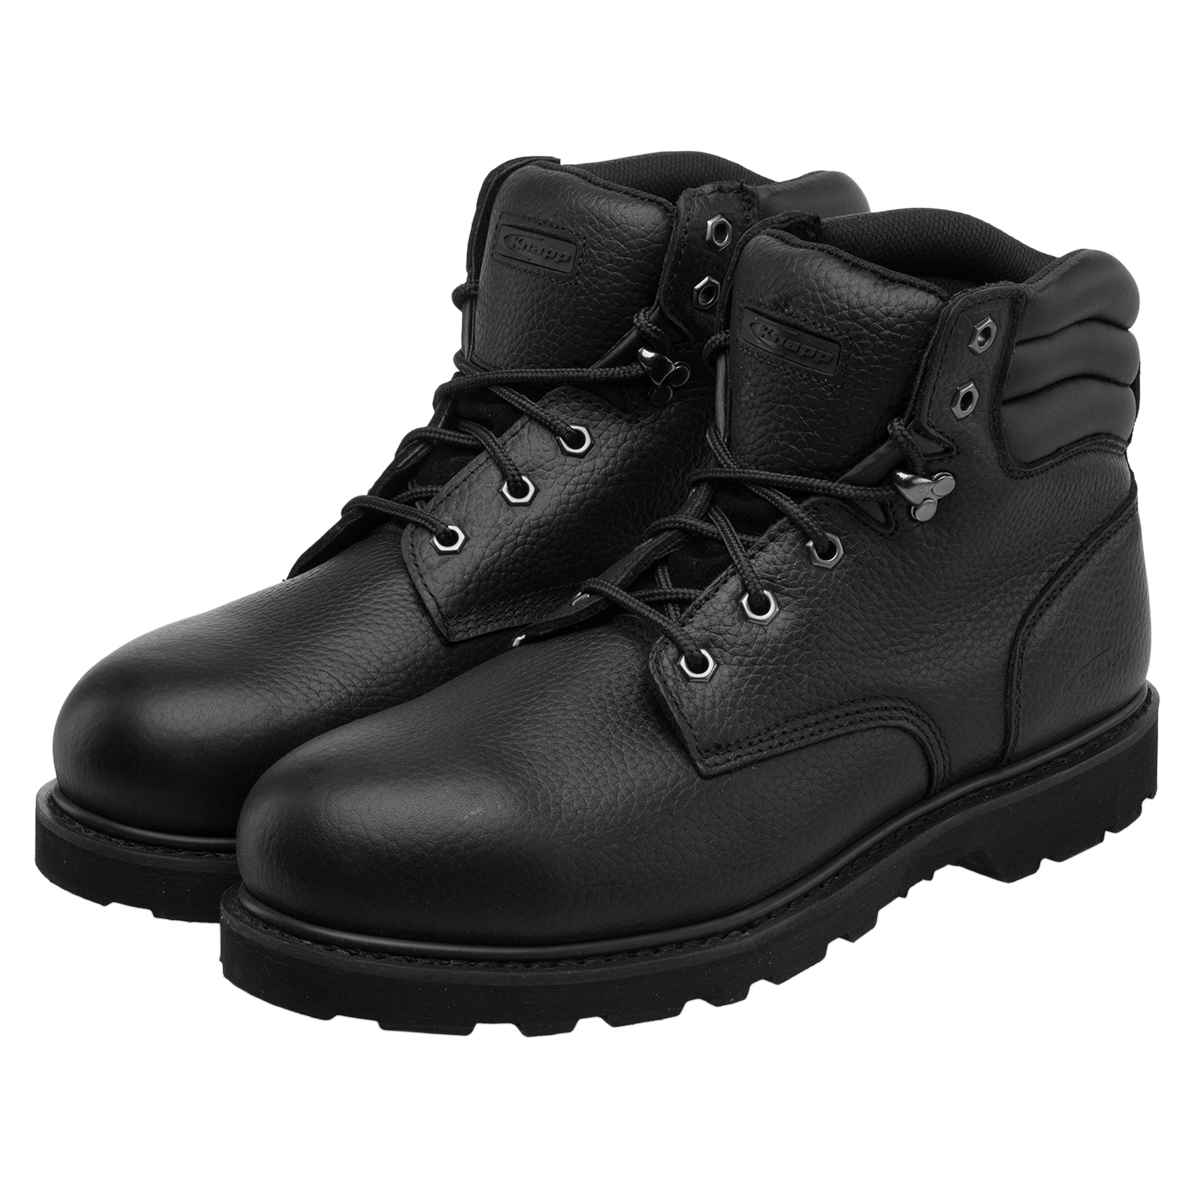 Leather Steel Toe Work Shoes